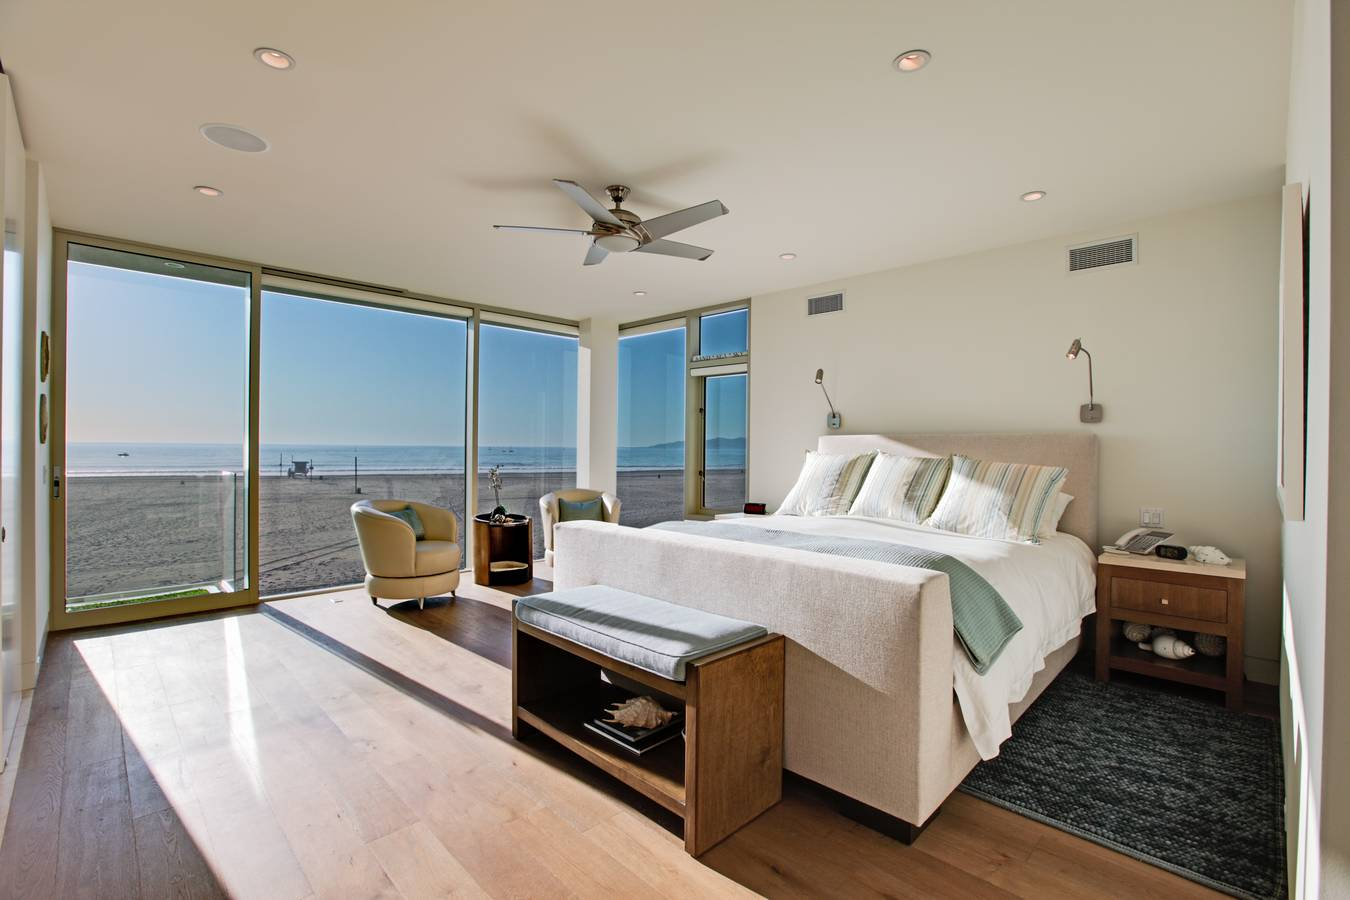 Modern beach bedrooms - Master Bedroom Master Bathroom